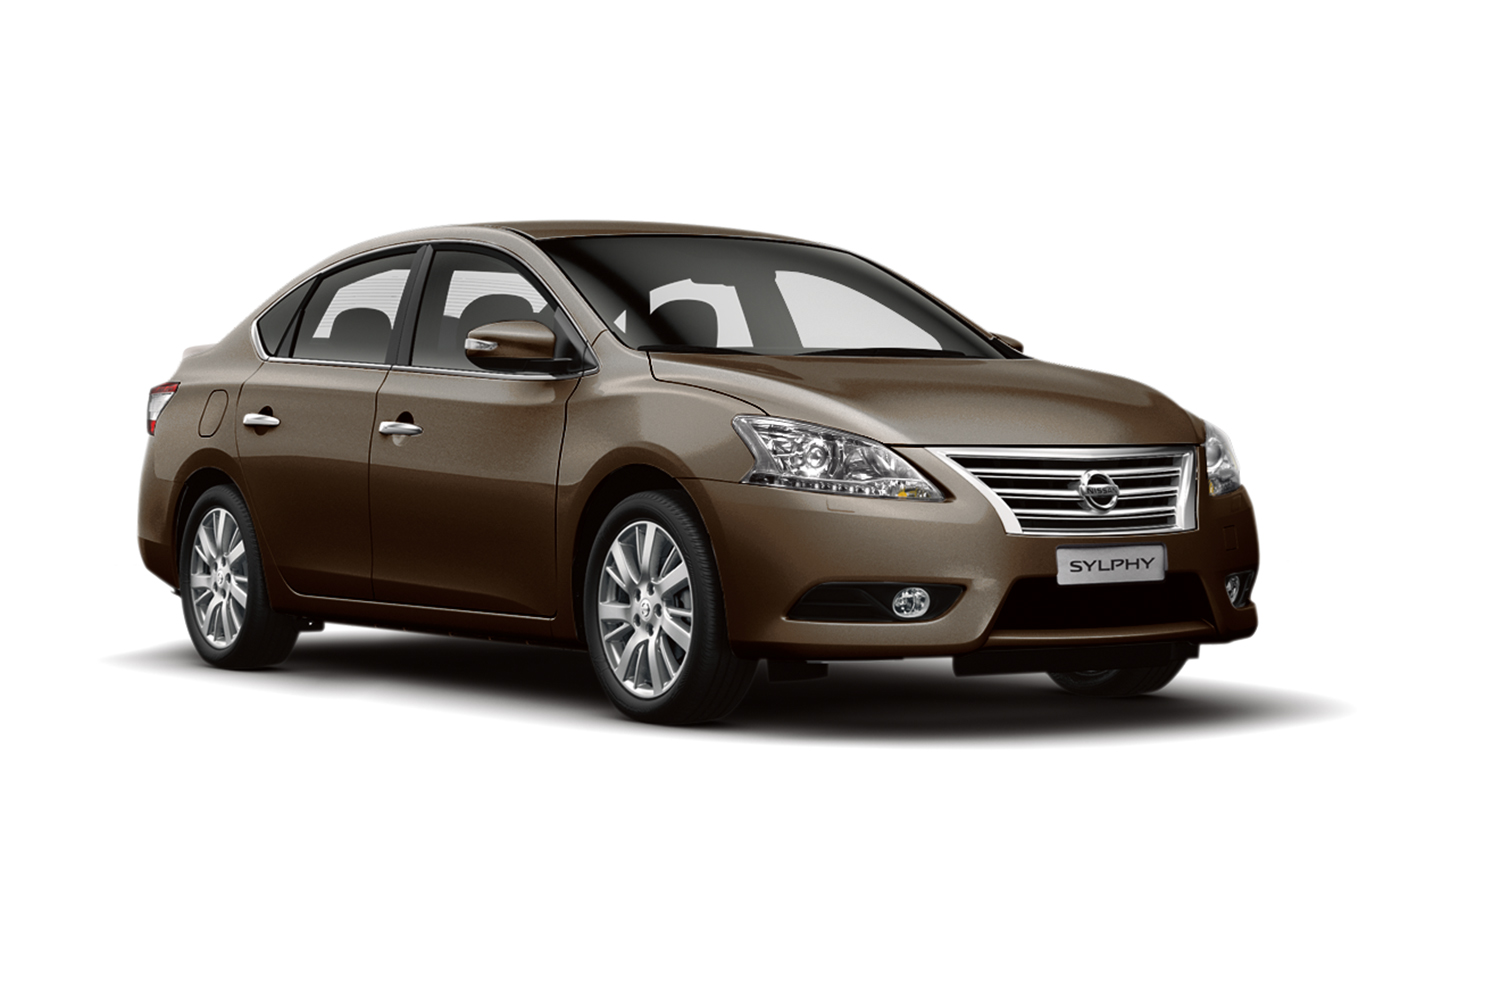 2018 Nissan Sylphy >> Nissan Sylphy 1.8 (B17) launched – RM112k-122k Image 244990